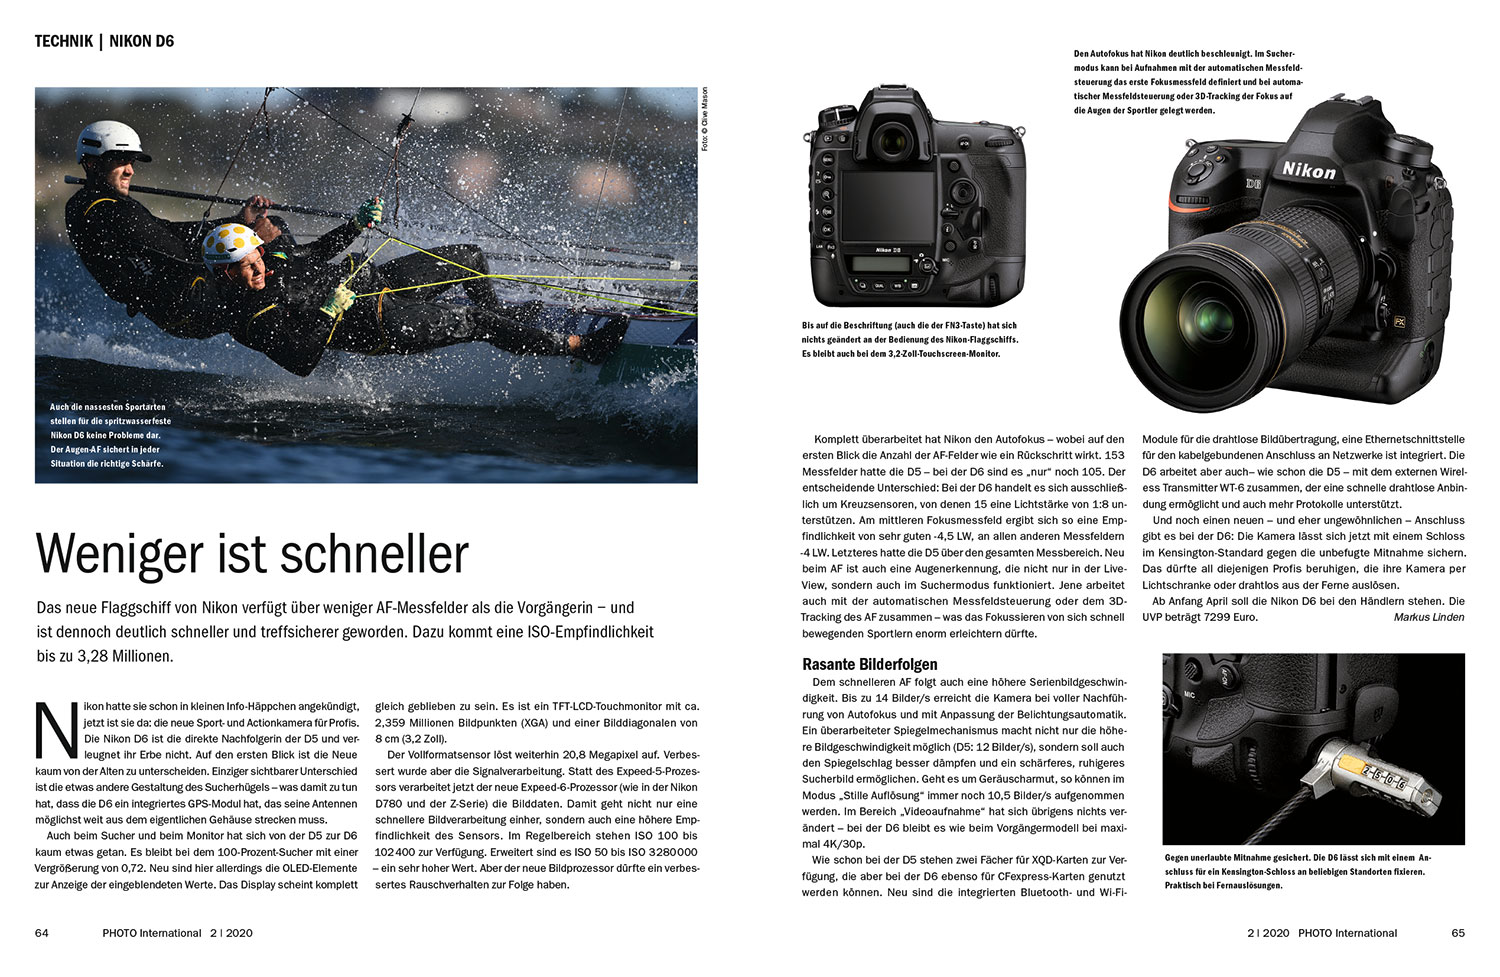 Technik-NikonD6-Kamera-Photo-International-02-2020